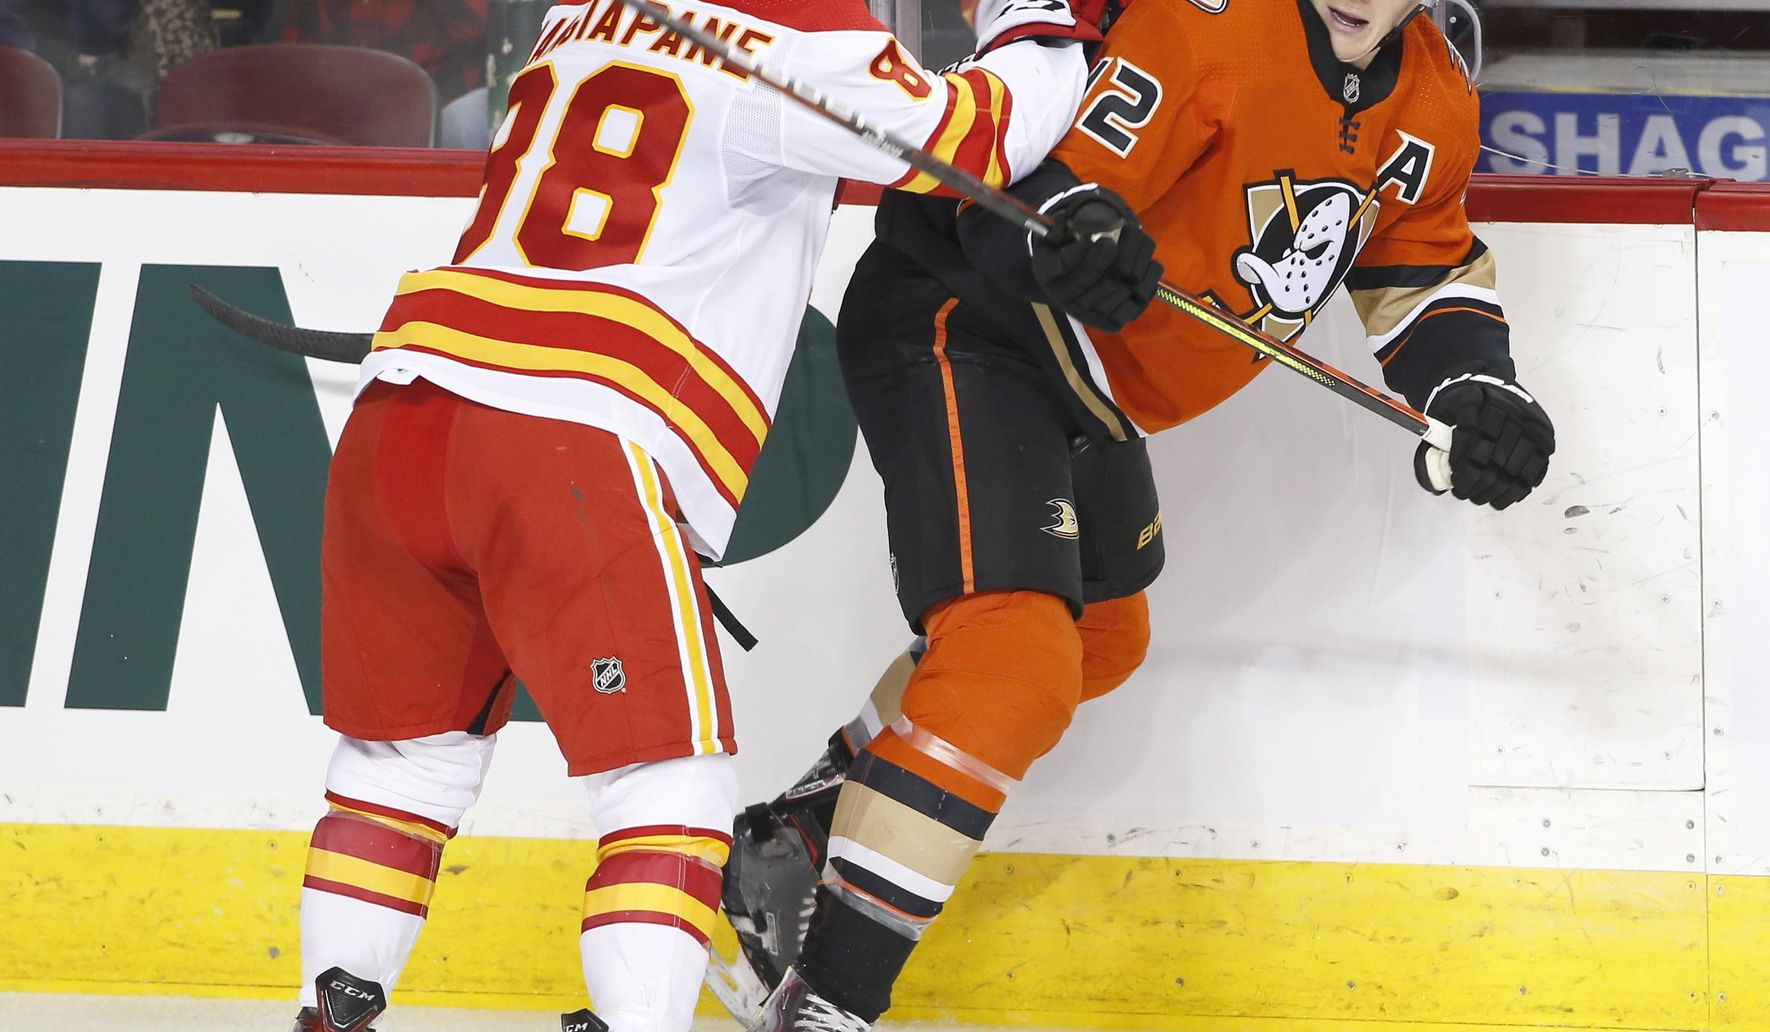 Ducks_flames_hockey_46823_c0-409-3000-2158_s1770x1032